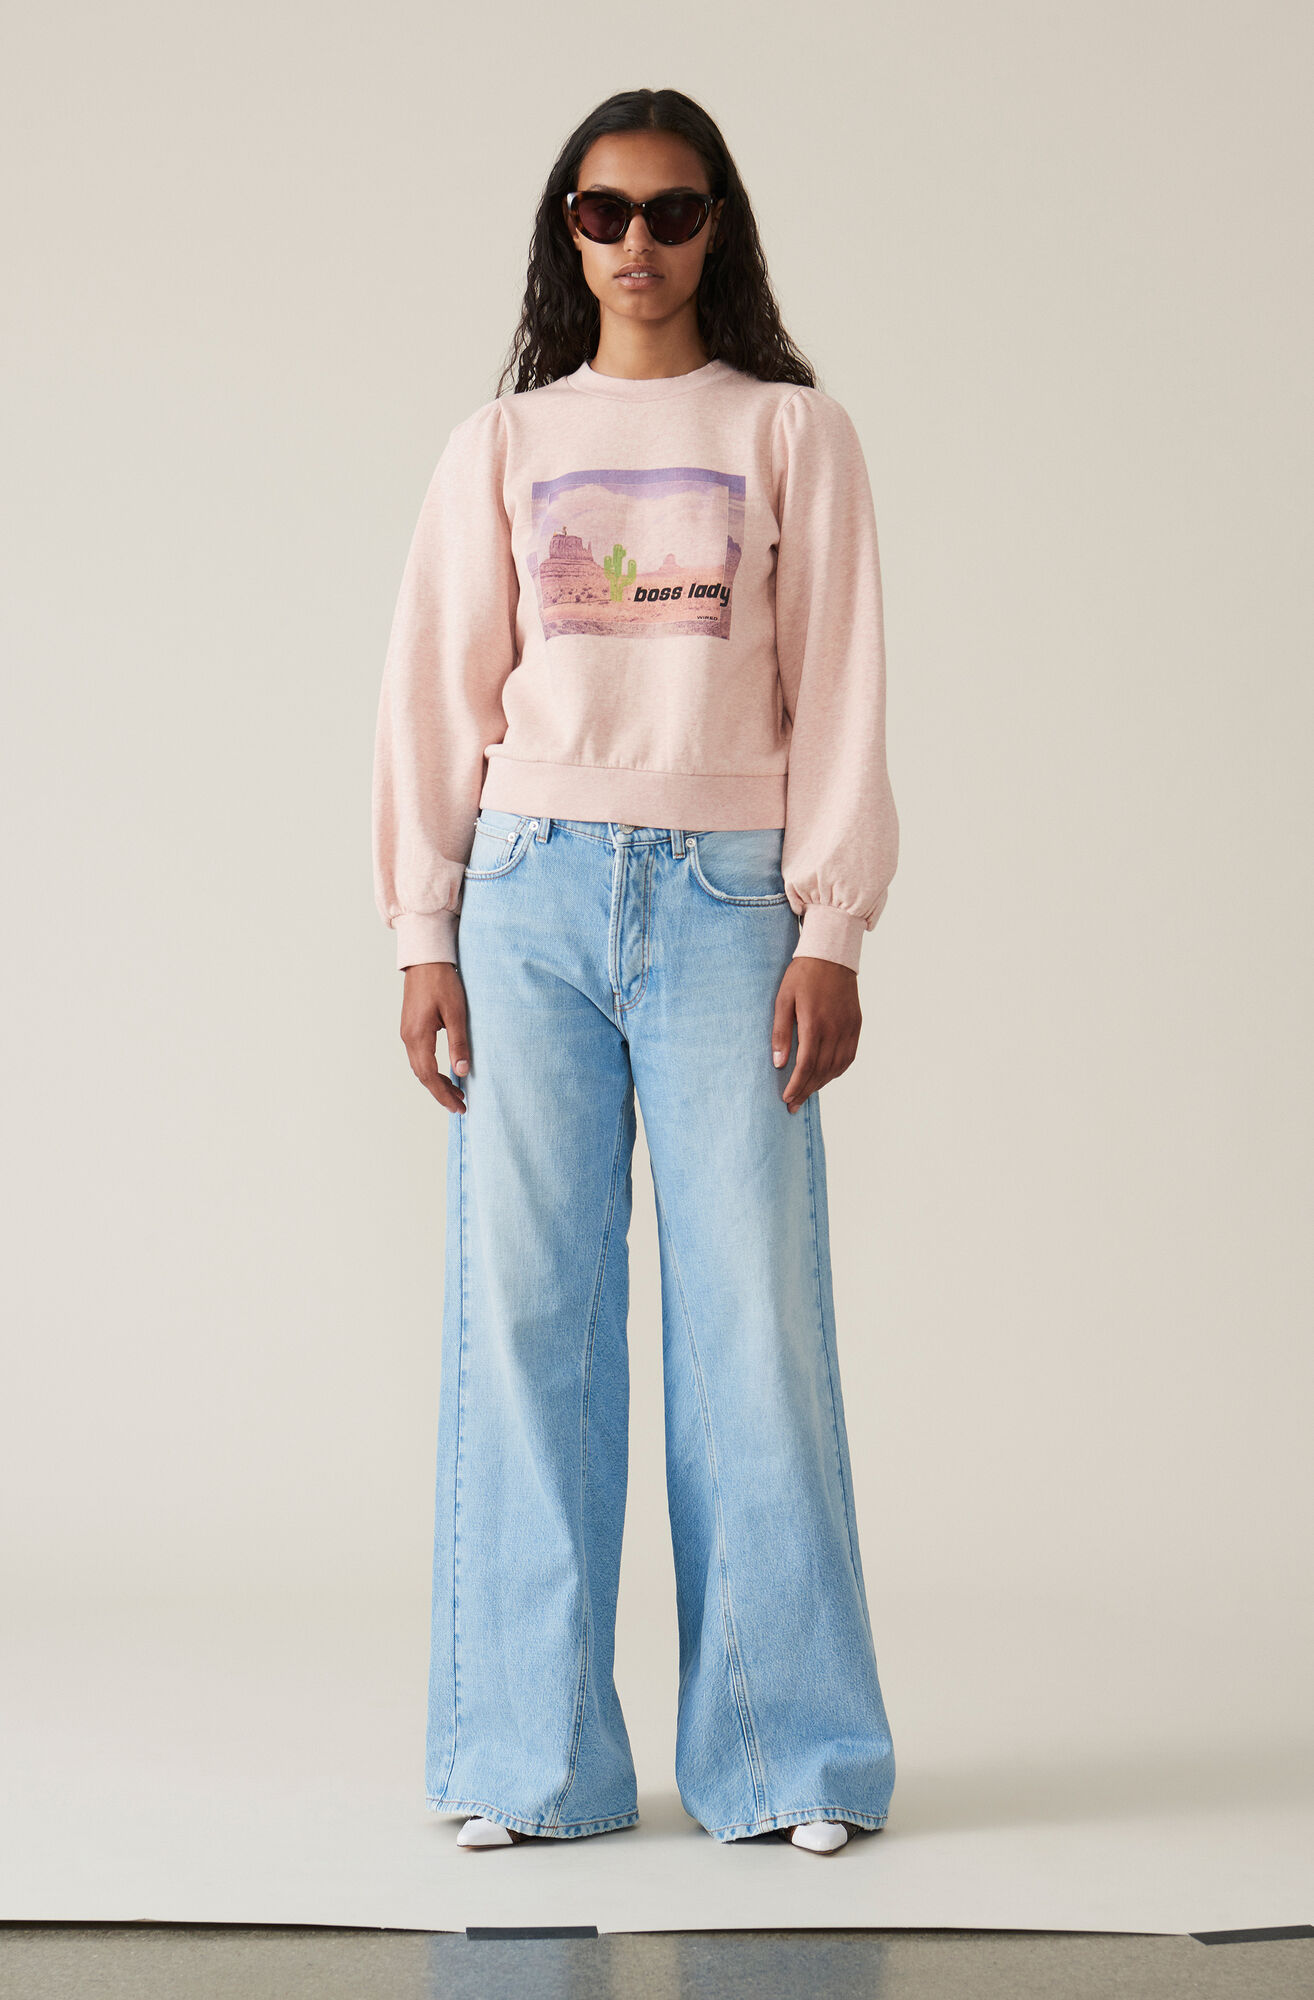 Isoli Puff Sweatshirt, Boss Lady, Silver Pink, hi-res